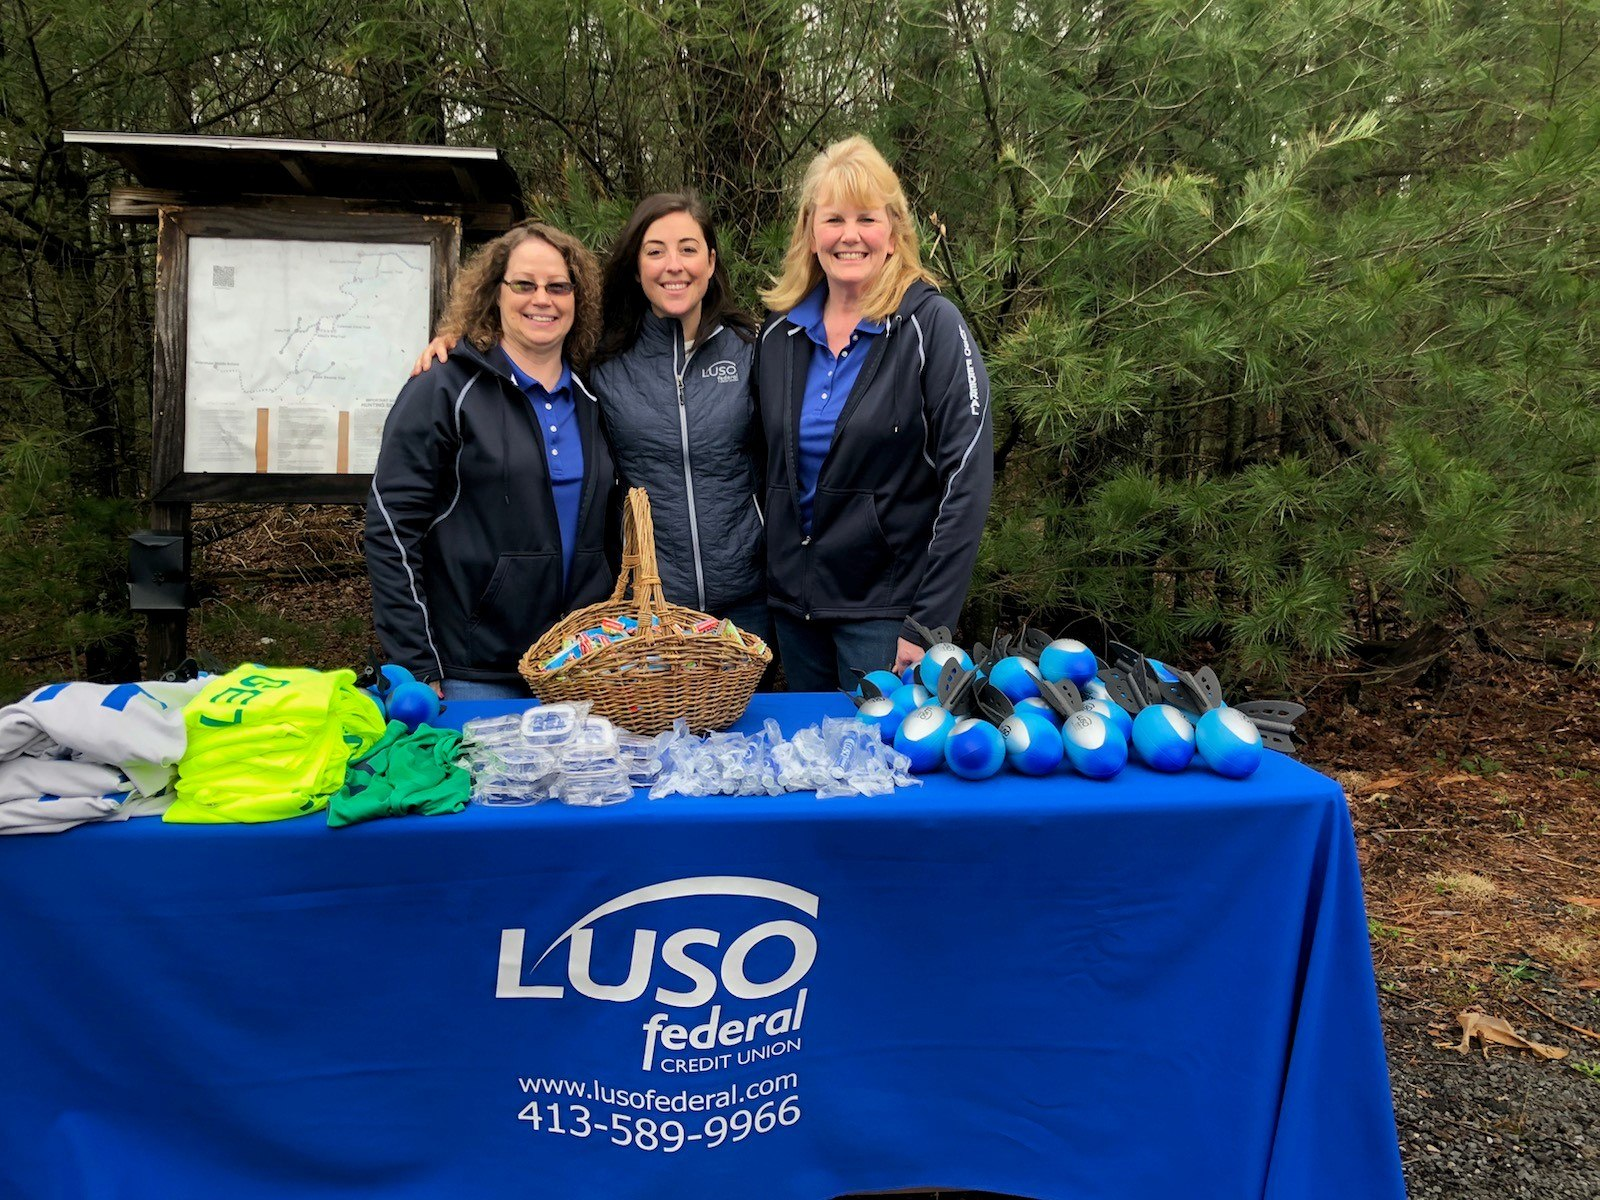 Three LUSO women standing behind LUSO table